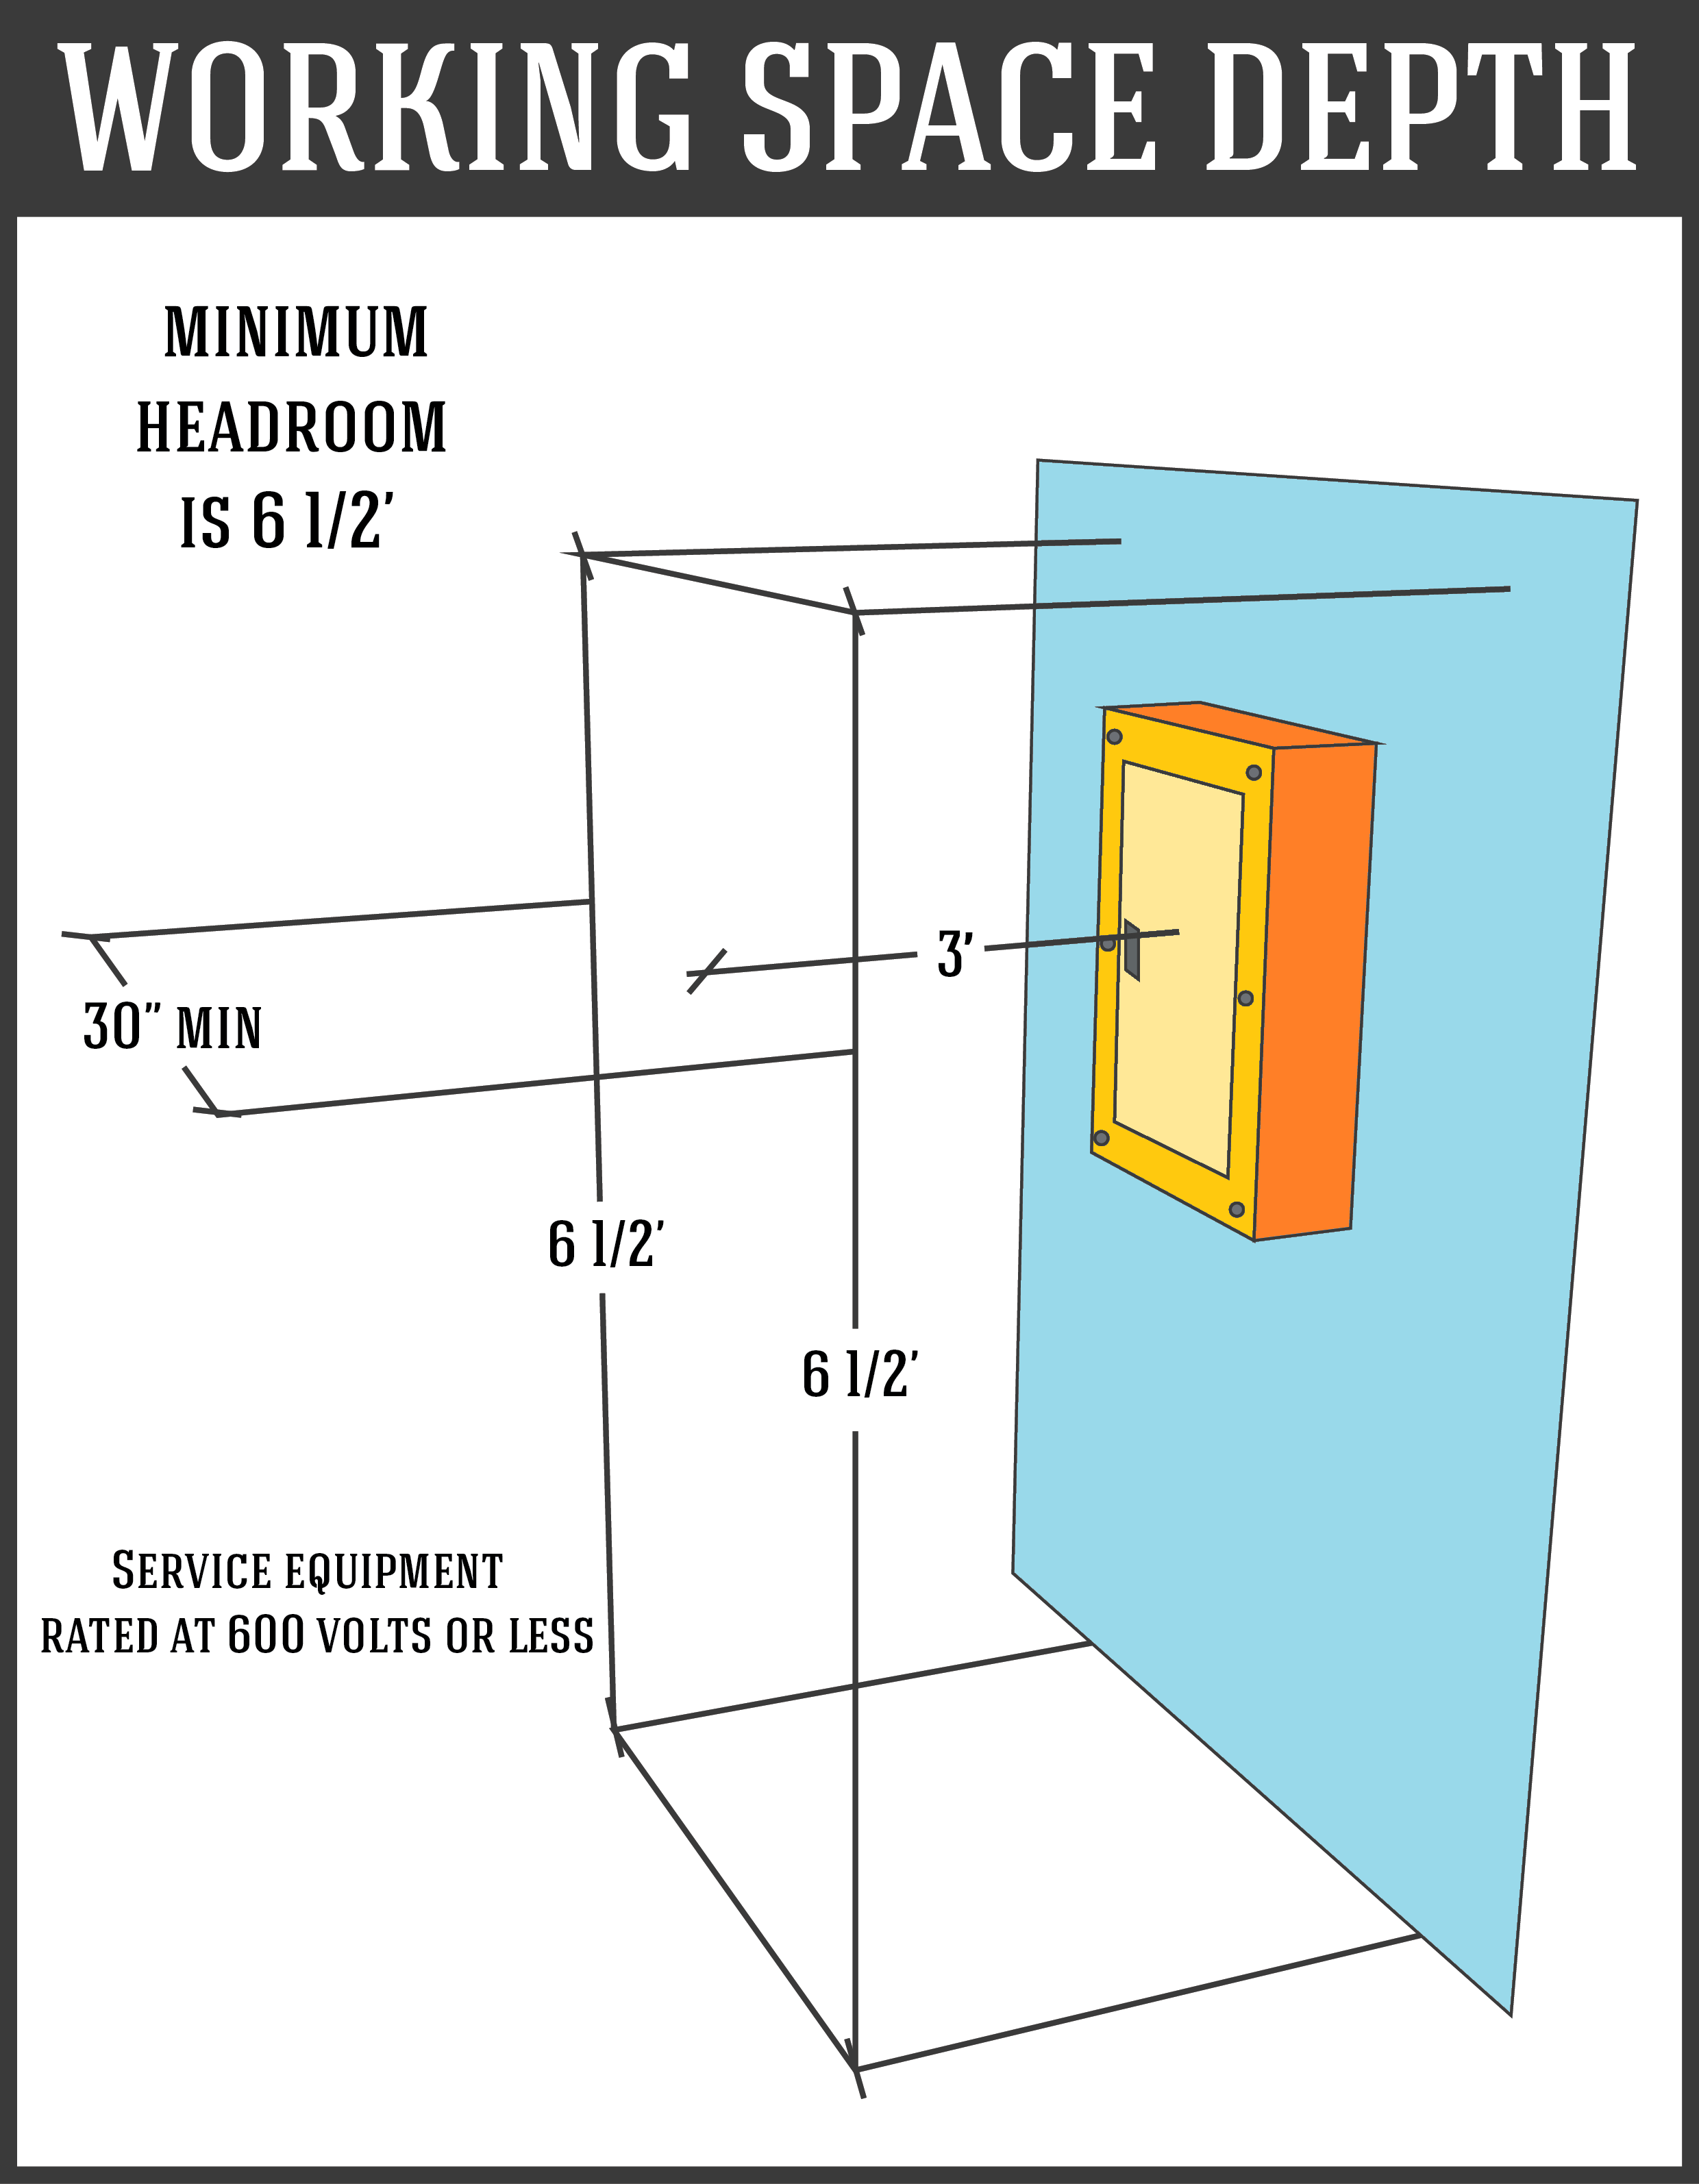 This image shows the recommended working space depth for What is the standard electrical service for residential